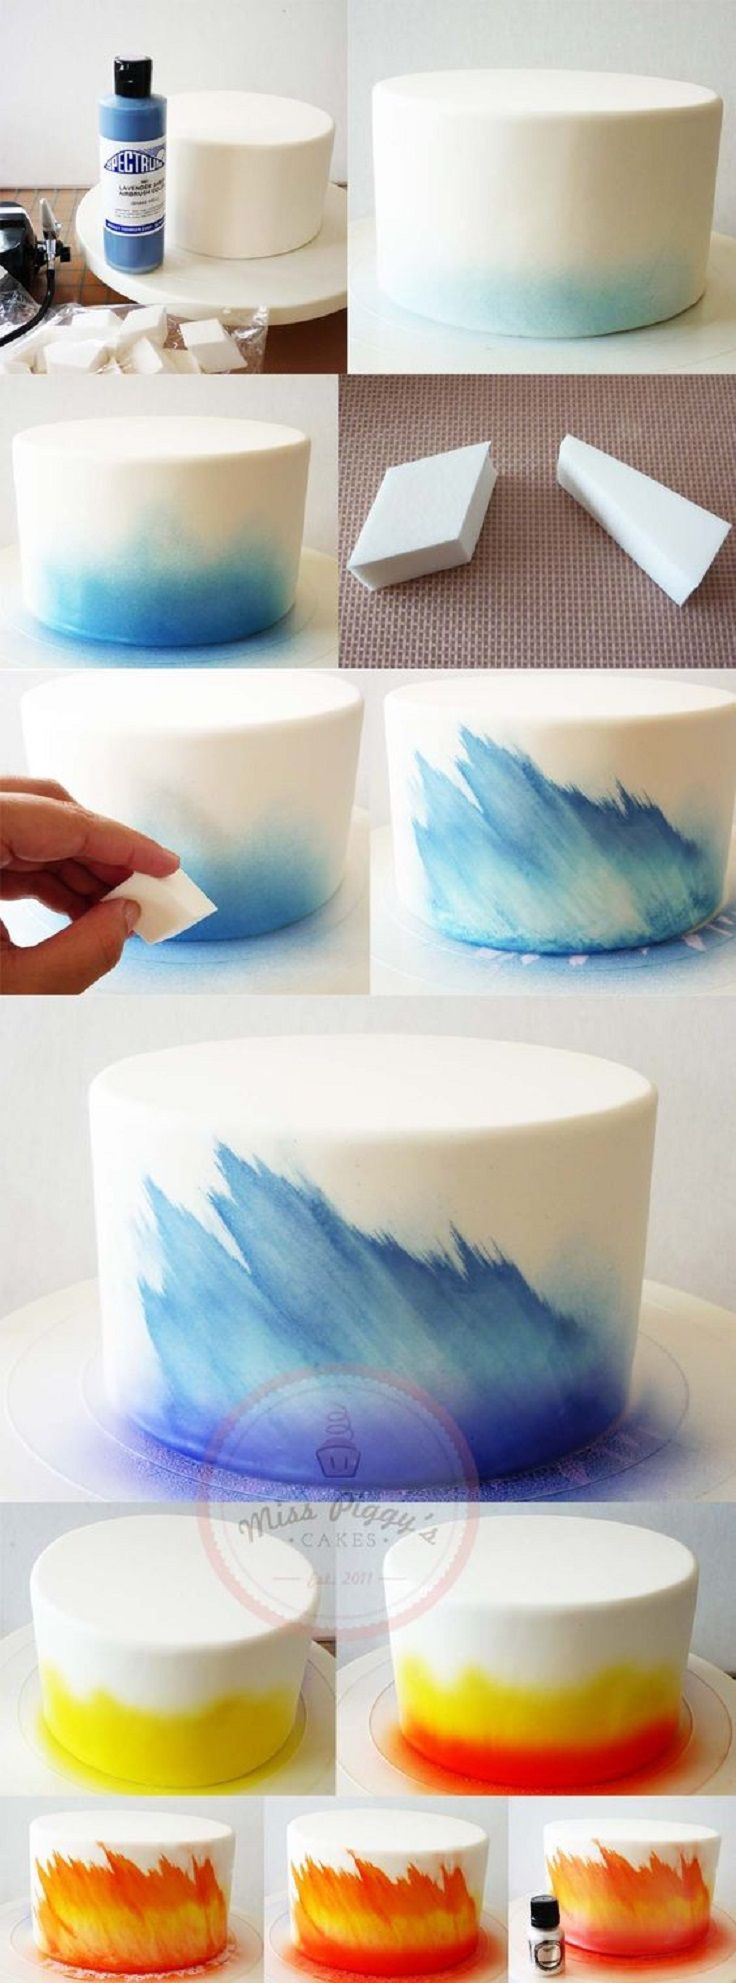 Best 25+ Cake boss cakes ideas on Pinterest